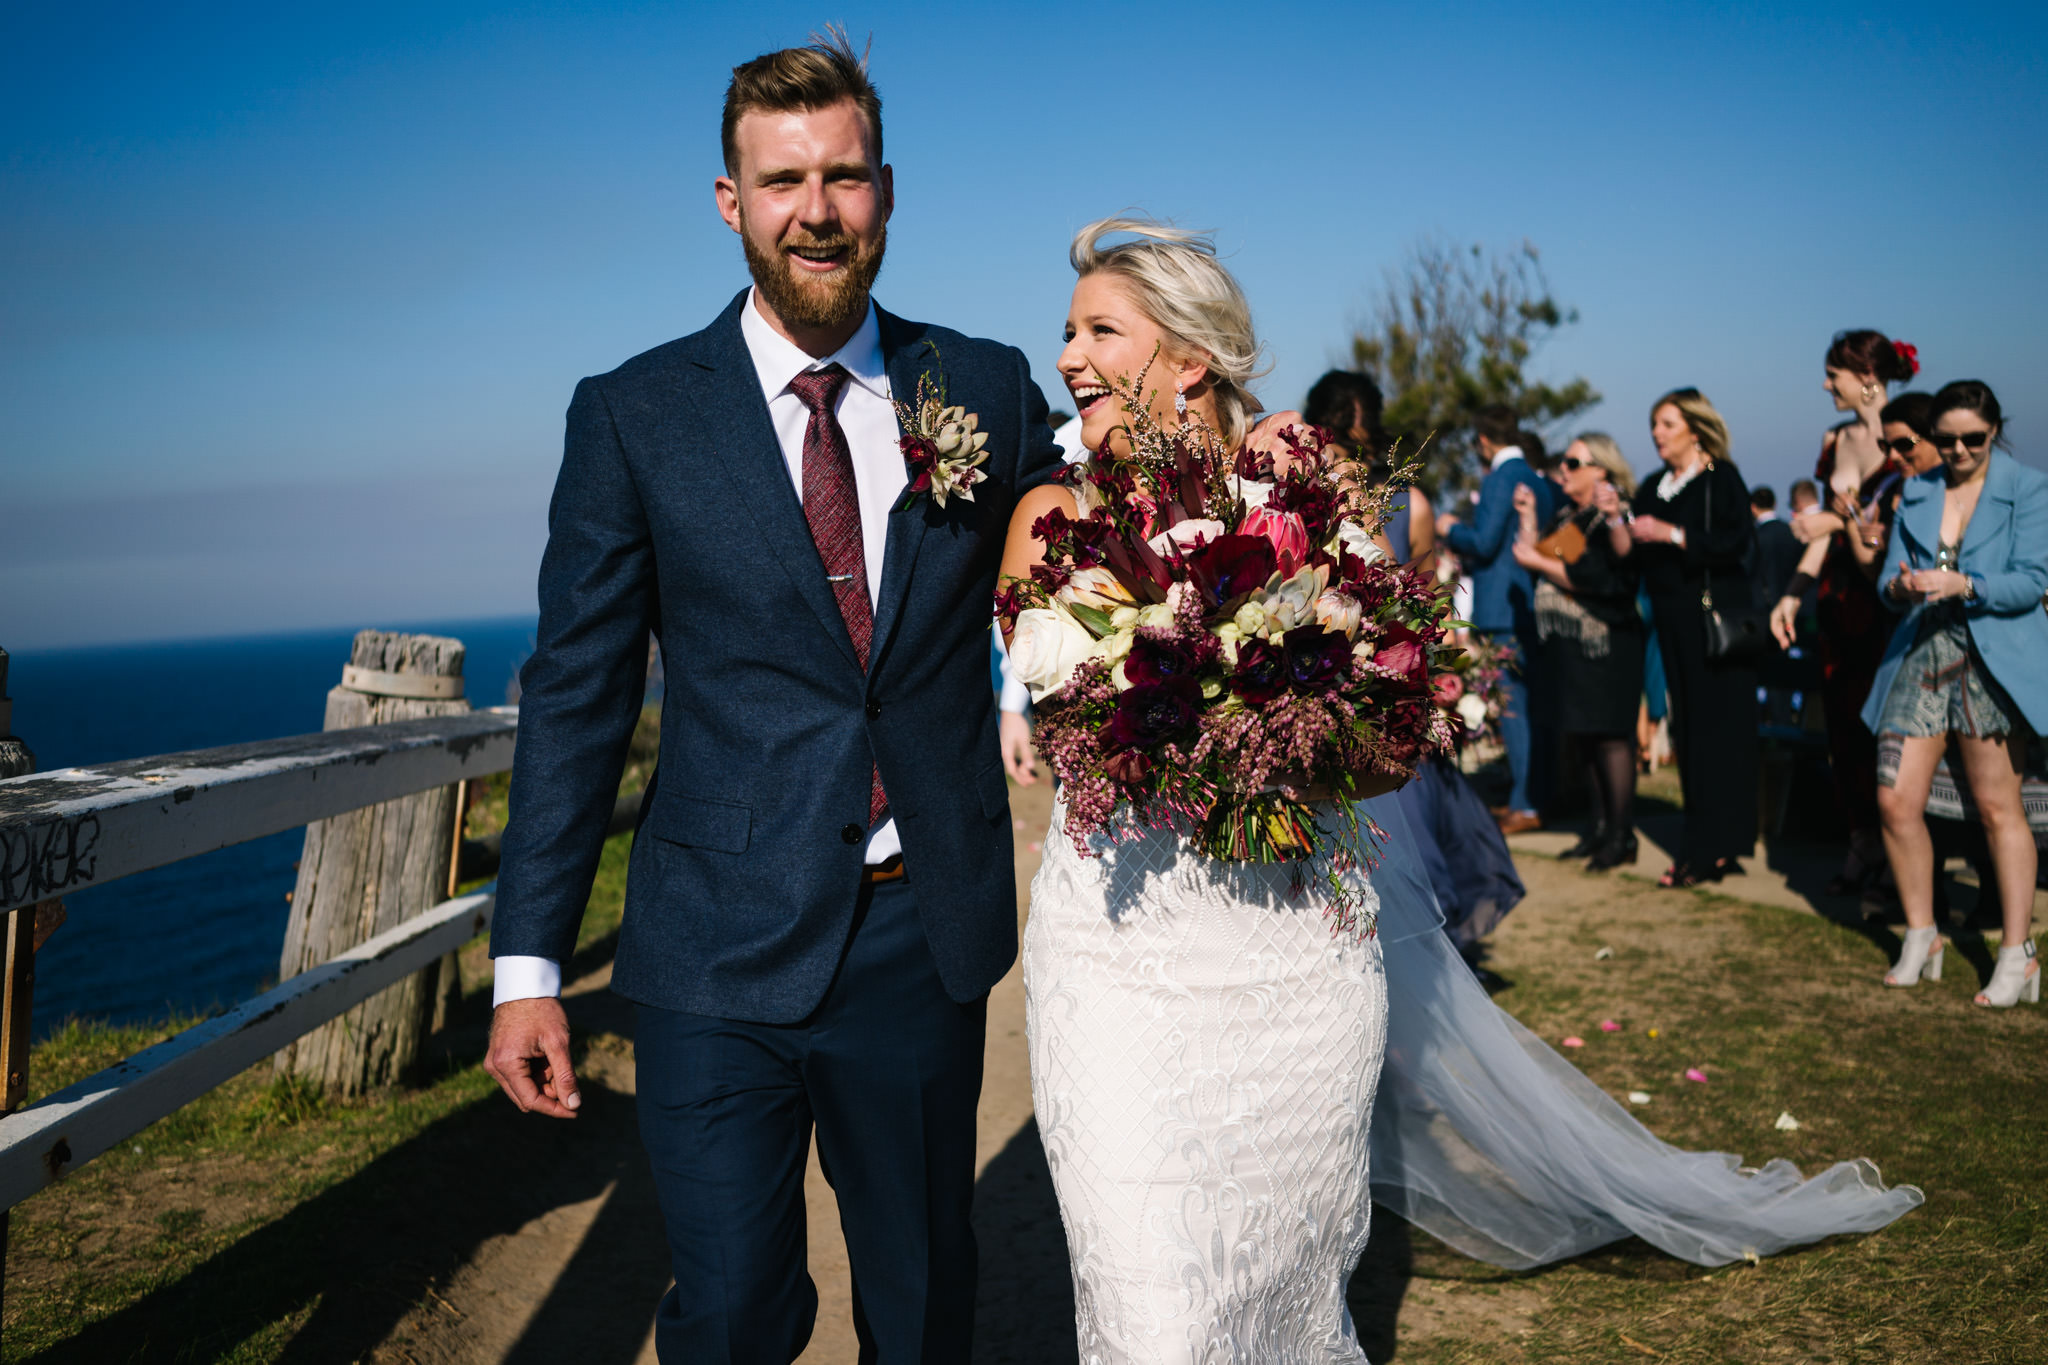 Newlyweds smiling after Northern Beaches wedding ceremony